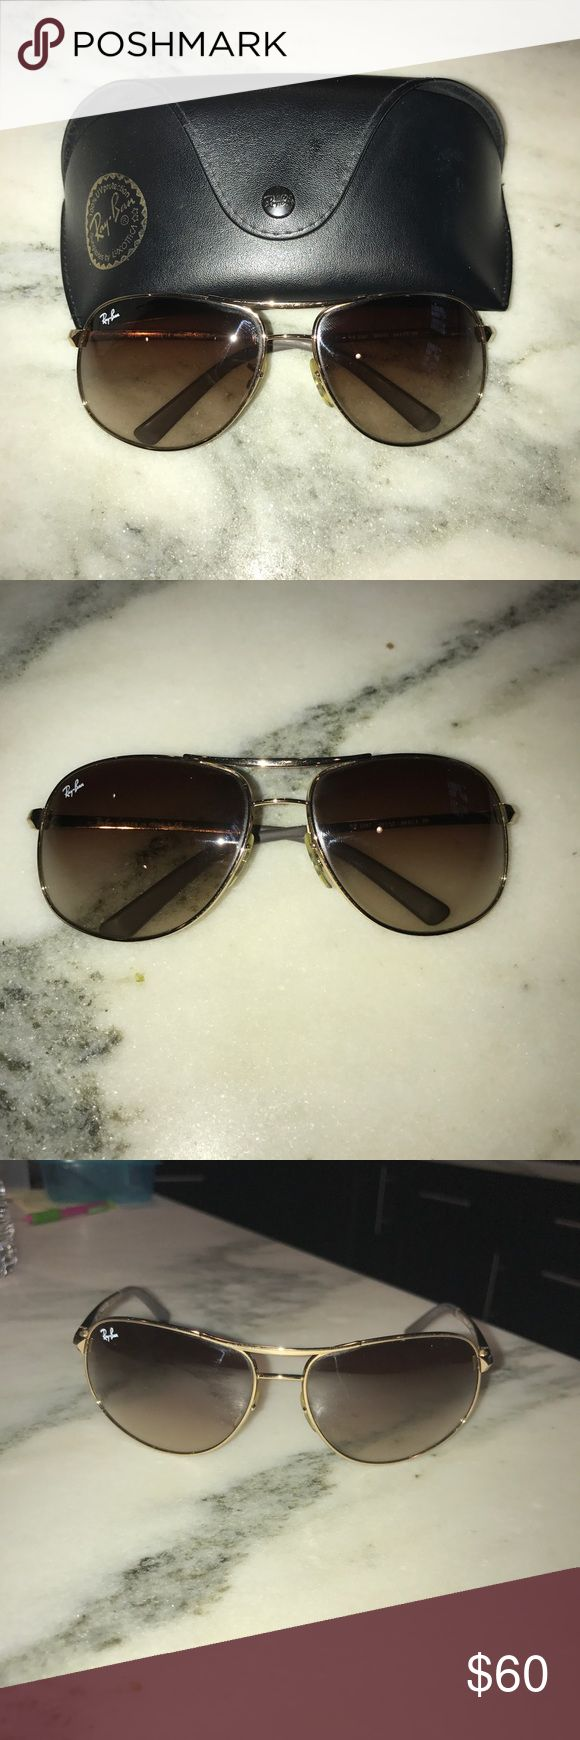 Ray Ban Aviators Authentic Ray Ban Aviators Style 3387. Gold frames with brown lenses. Very gently used, minimal to no signs of wear. Comes with original leather case, cleaning cloth, and papers. Own them today for such a great price! Ray-Ban Accessories Sunglasses